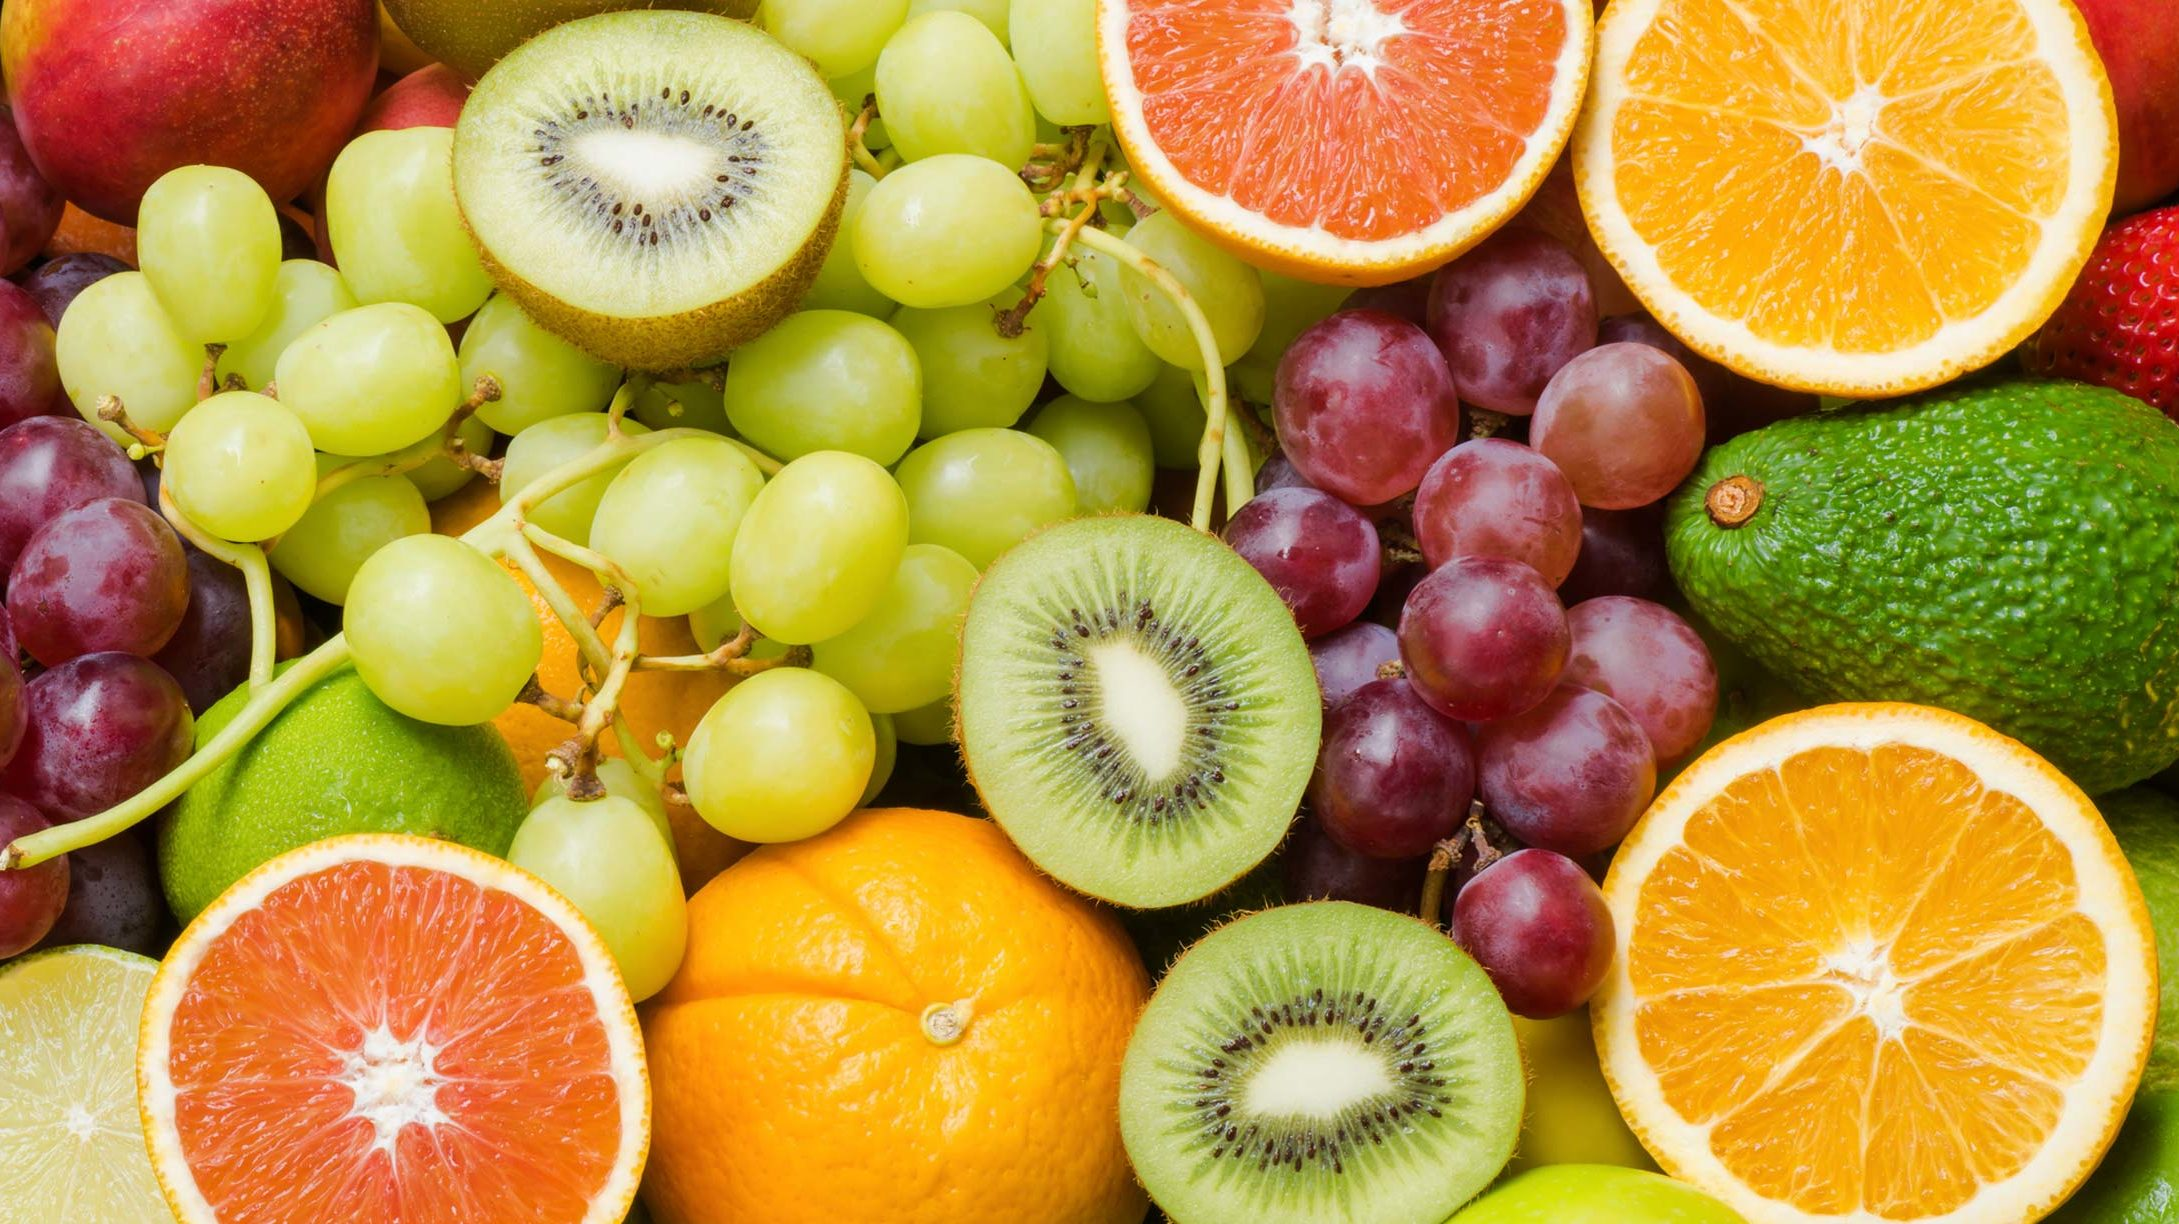 Weight Loss: Four fruits that can help reduce weight naturally